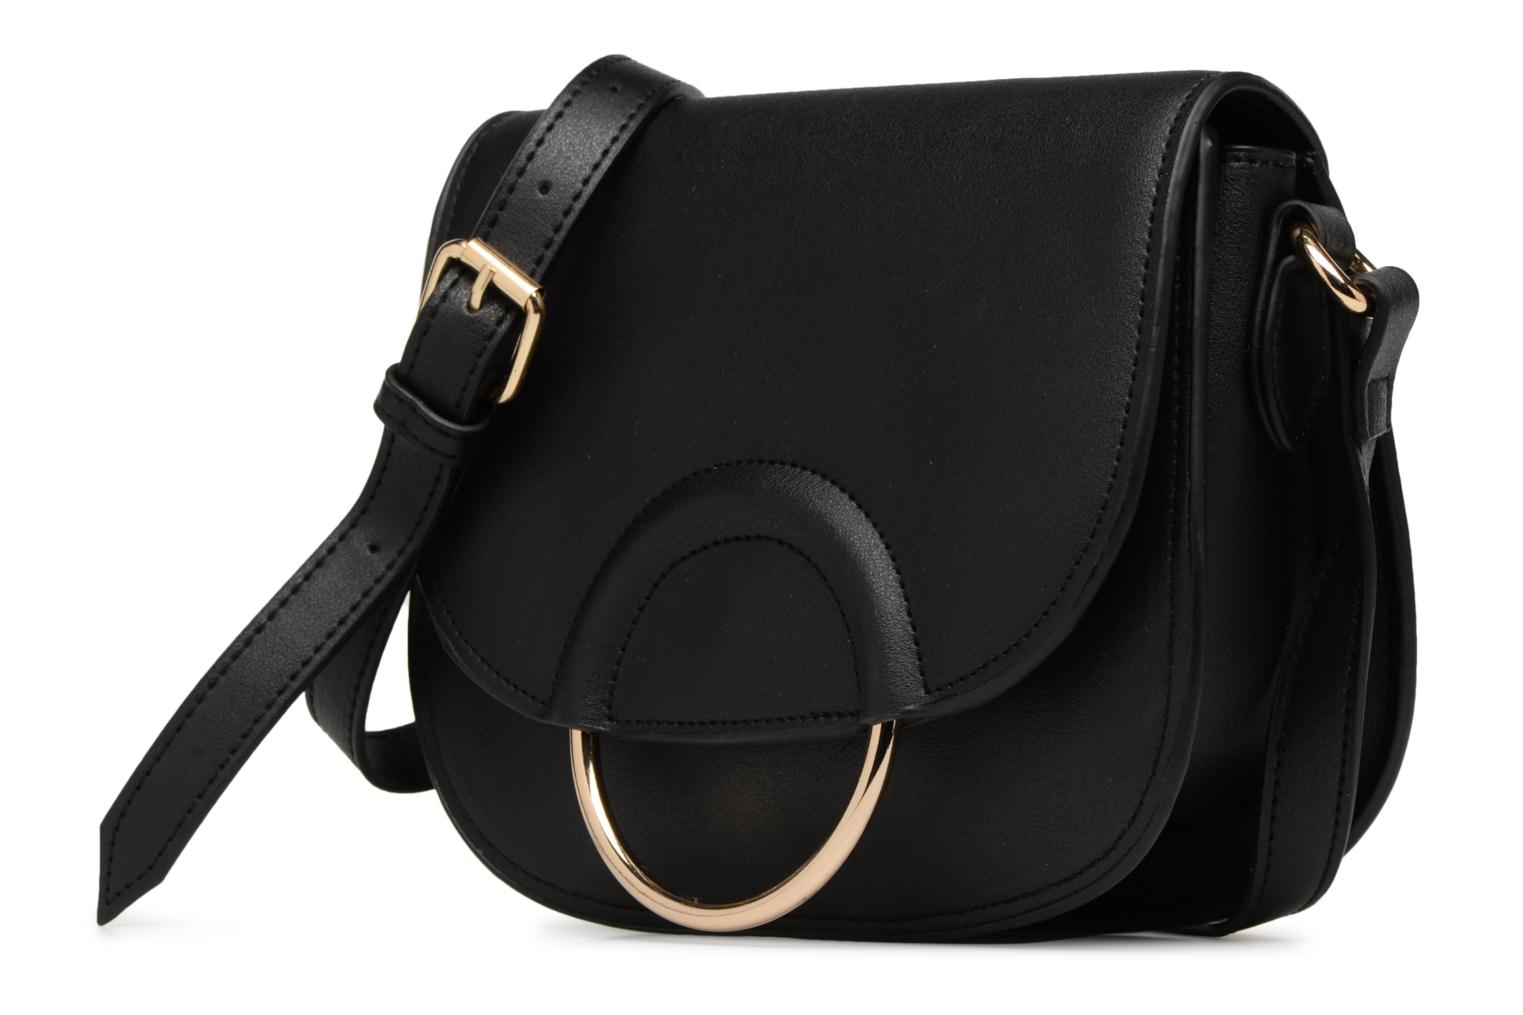 Crossbody Gemma Black Pieces Gemma Crossbody Pieces Fqwx0Up